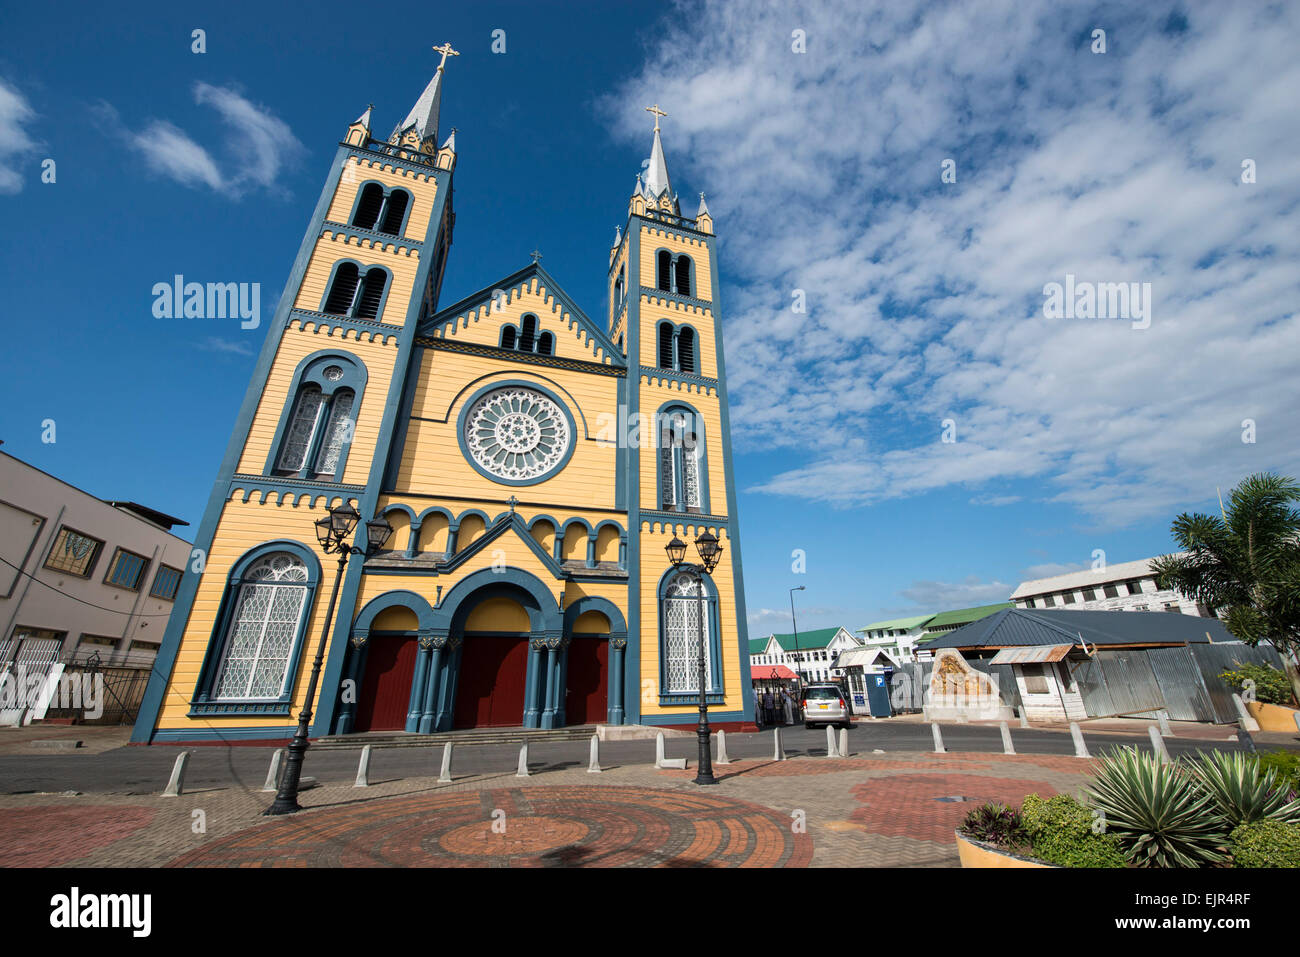 The Roman Catholic Diocese of Paramaribo, a fine example of wooden architecture, erected 1817, Paramaribo, Suriname - Stock Image